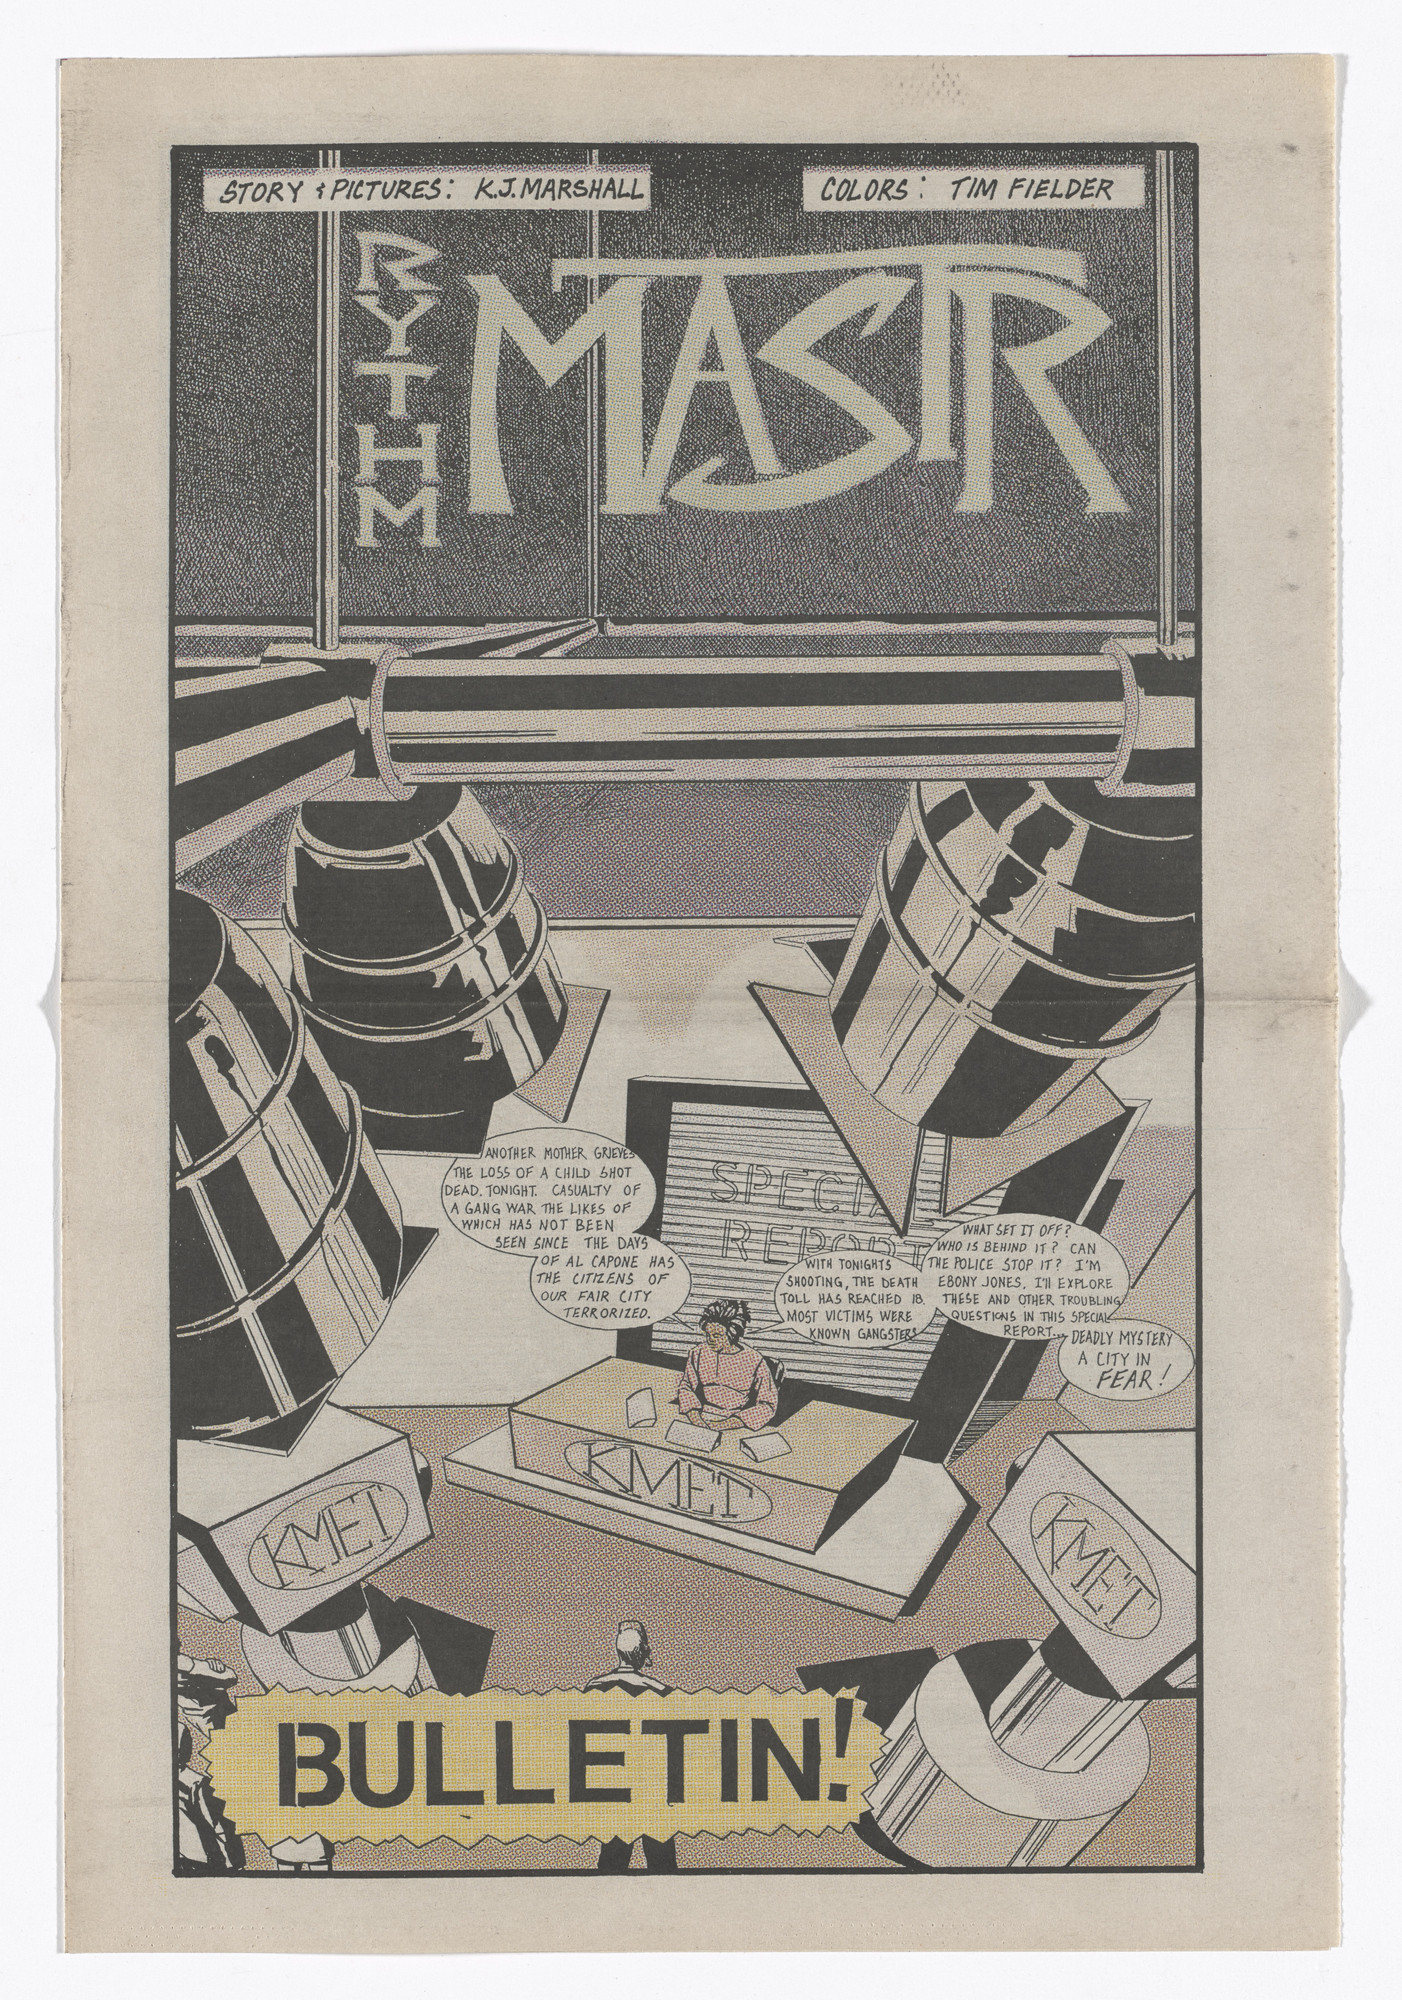 Kerry James Marshall. Rythm Mastr: Bulletin!. 1999–2000